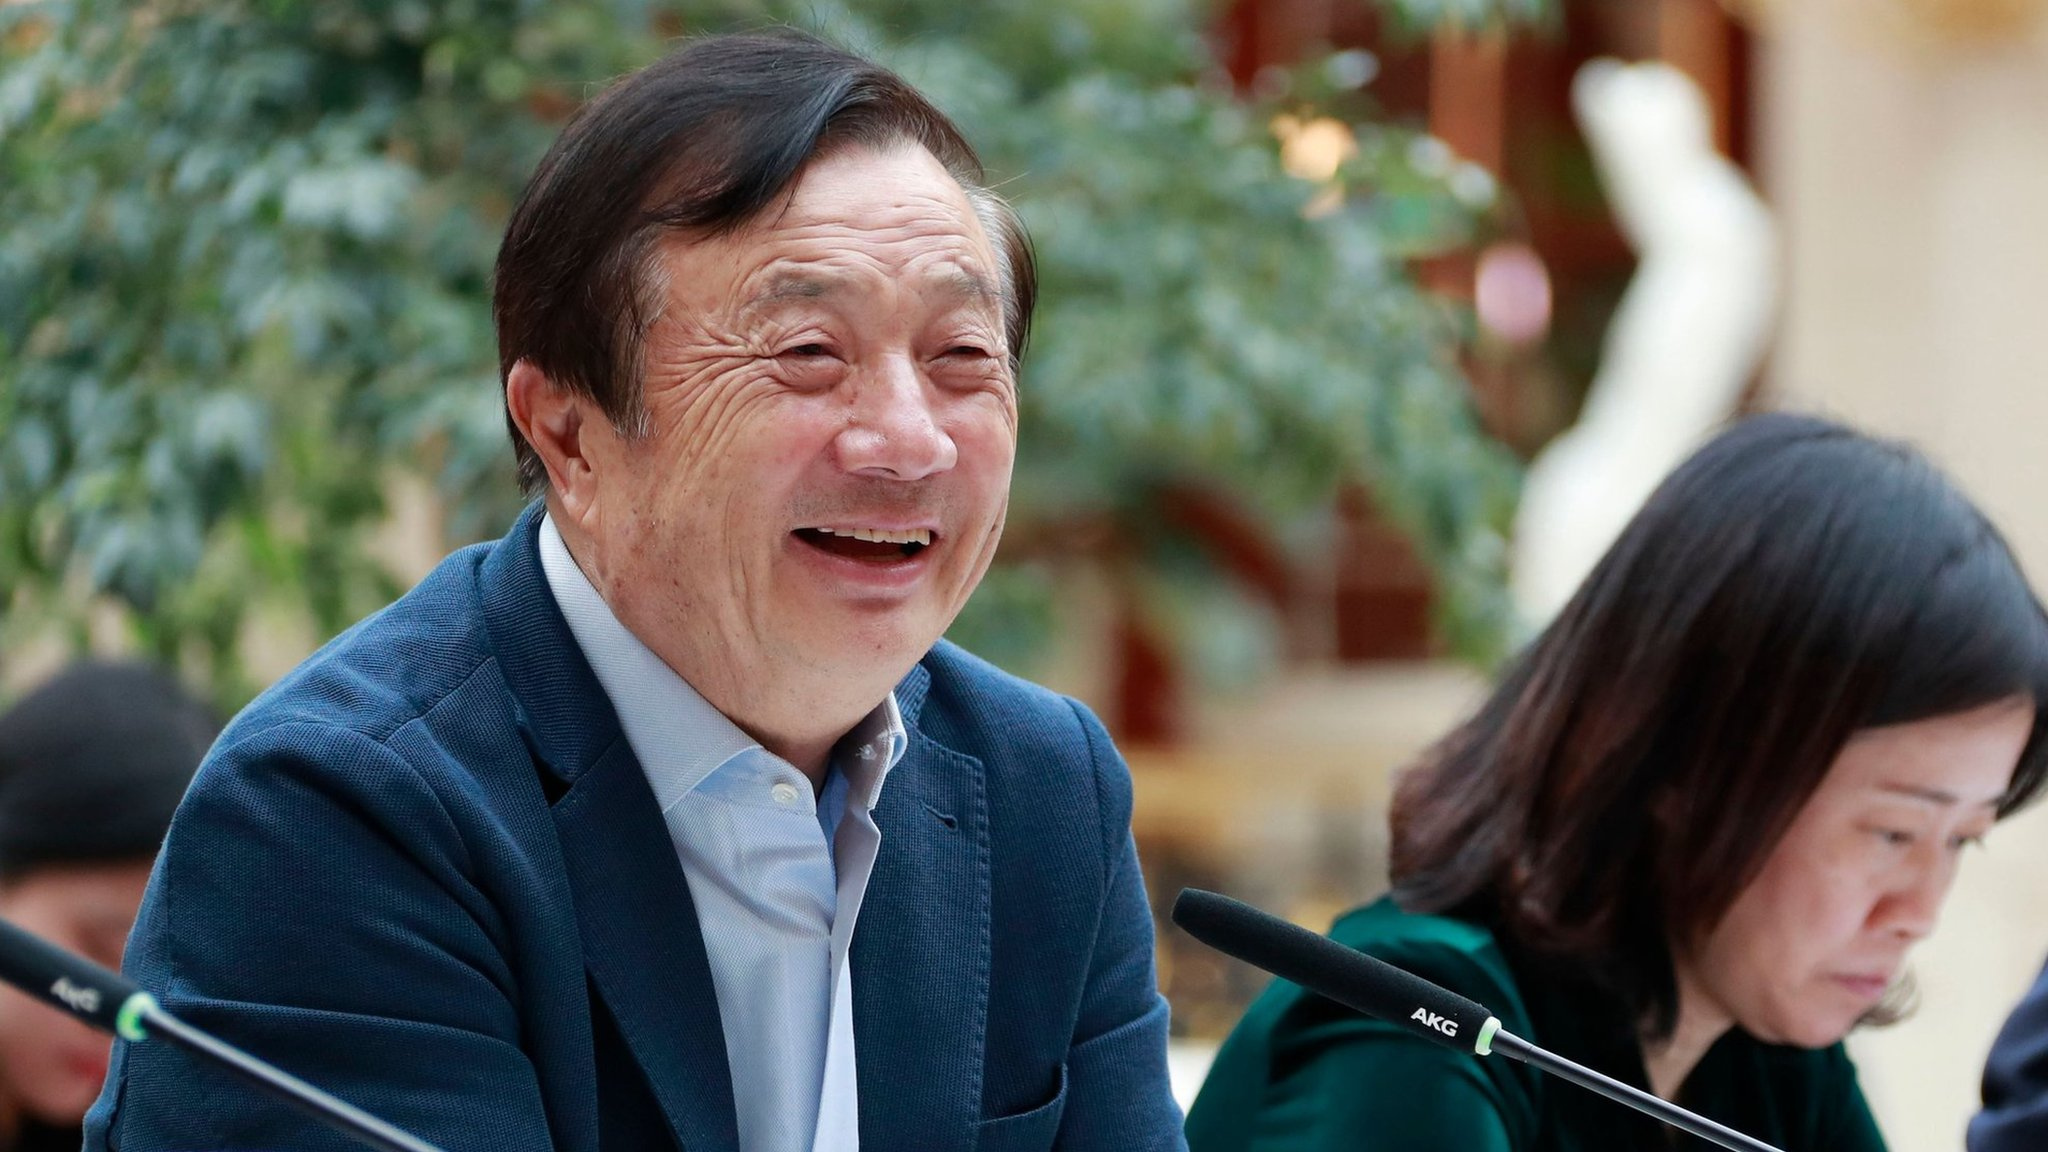 finest selection 7cff8 88435 Ren Zhengfei  Huawei s reclusive founder - When Ren Zhengfei started Huawei  in 1987 little did he know it would become a global telecoms giant.